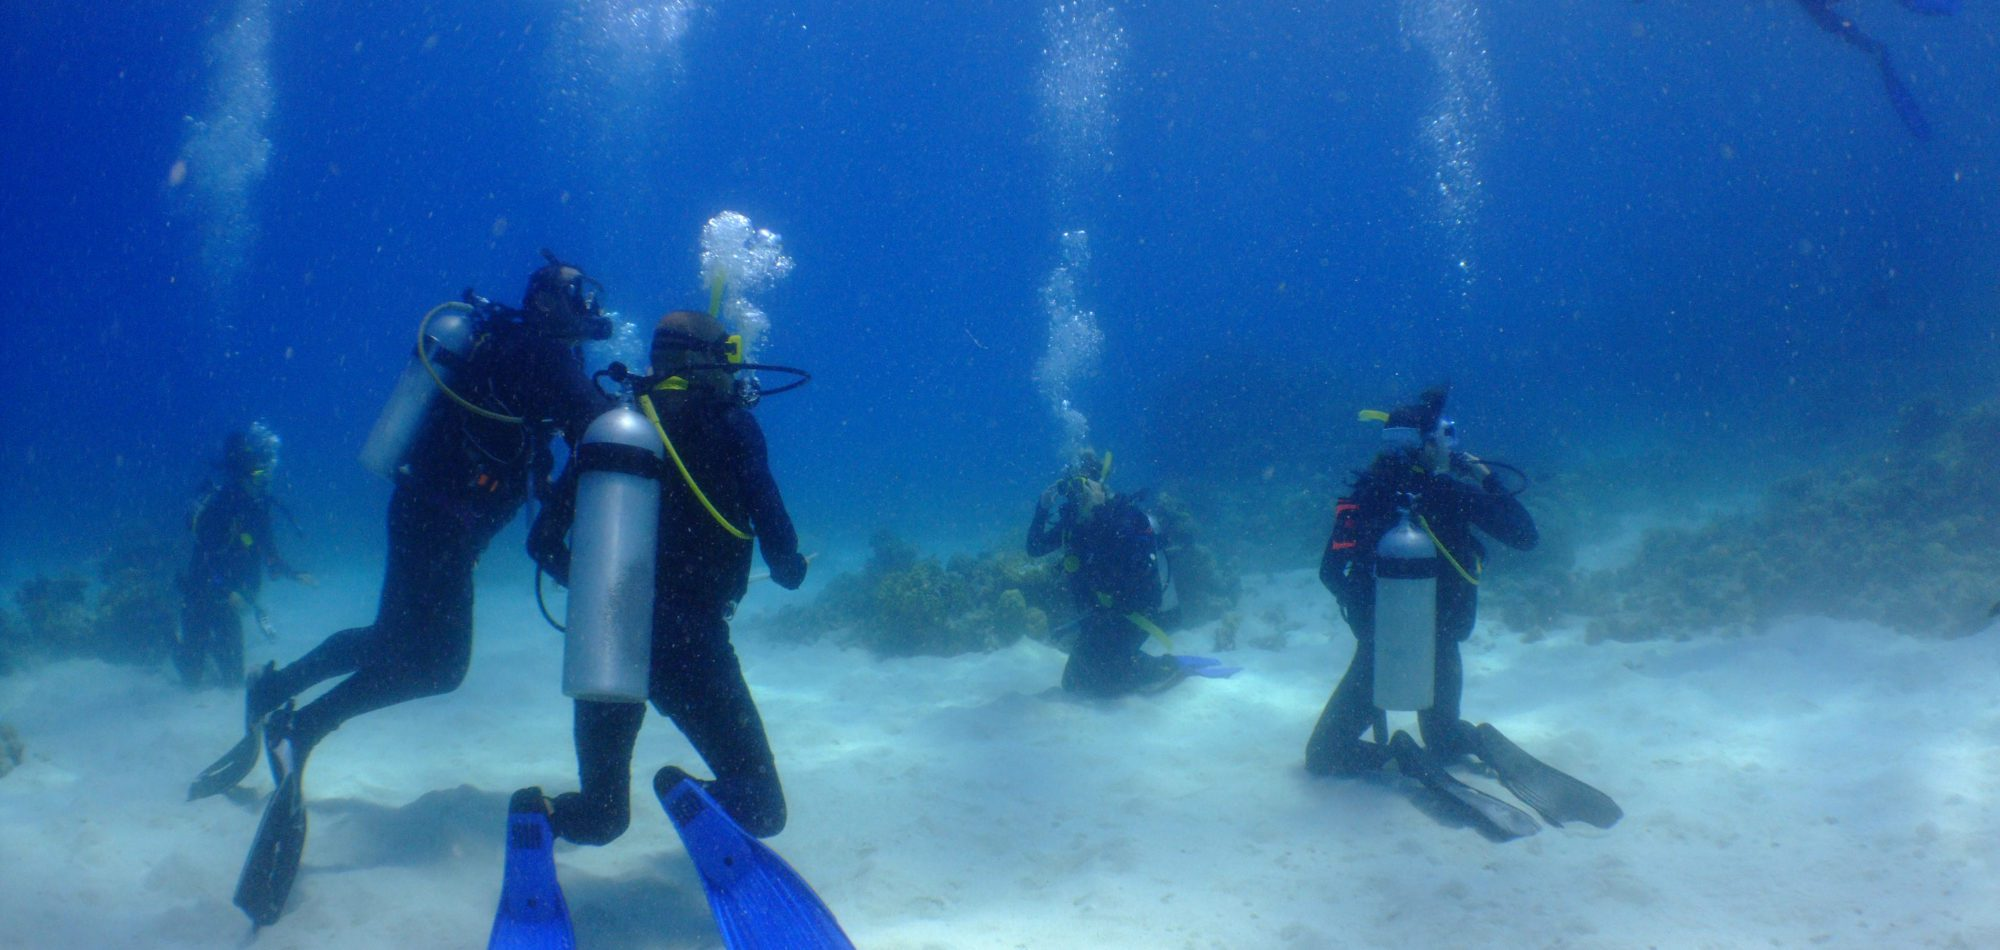 Cairns, learn to scuba dive - new divers doing skills training in pool